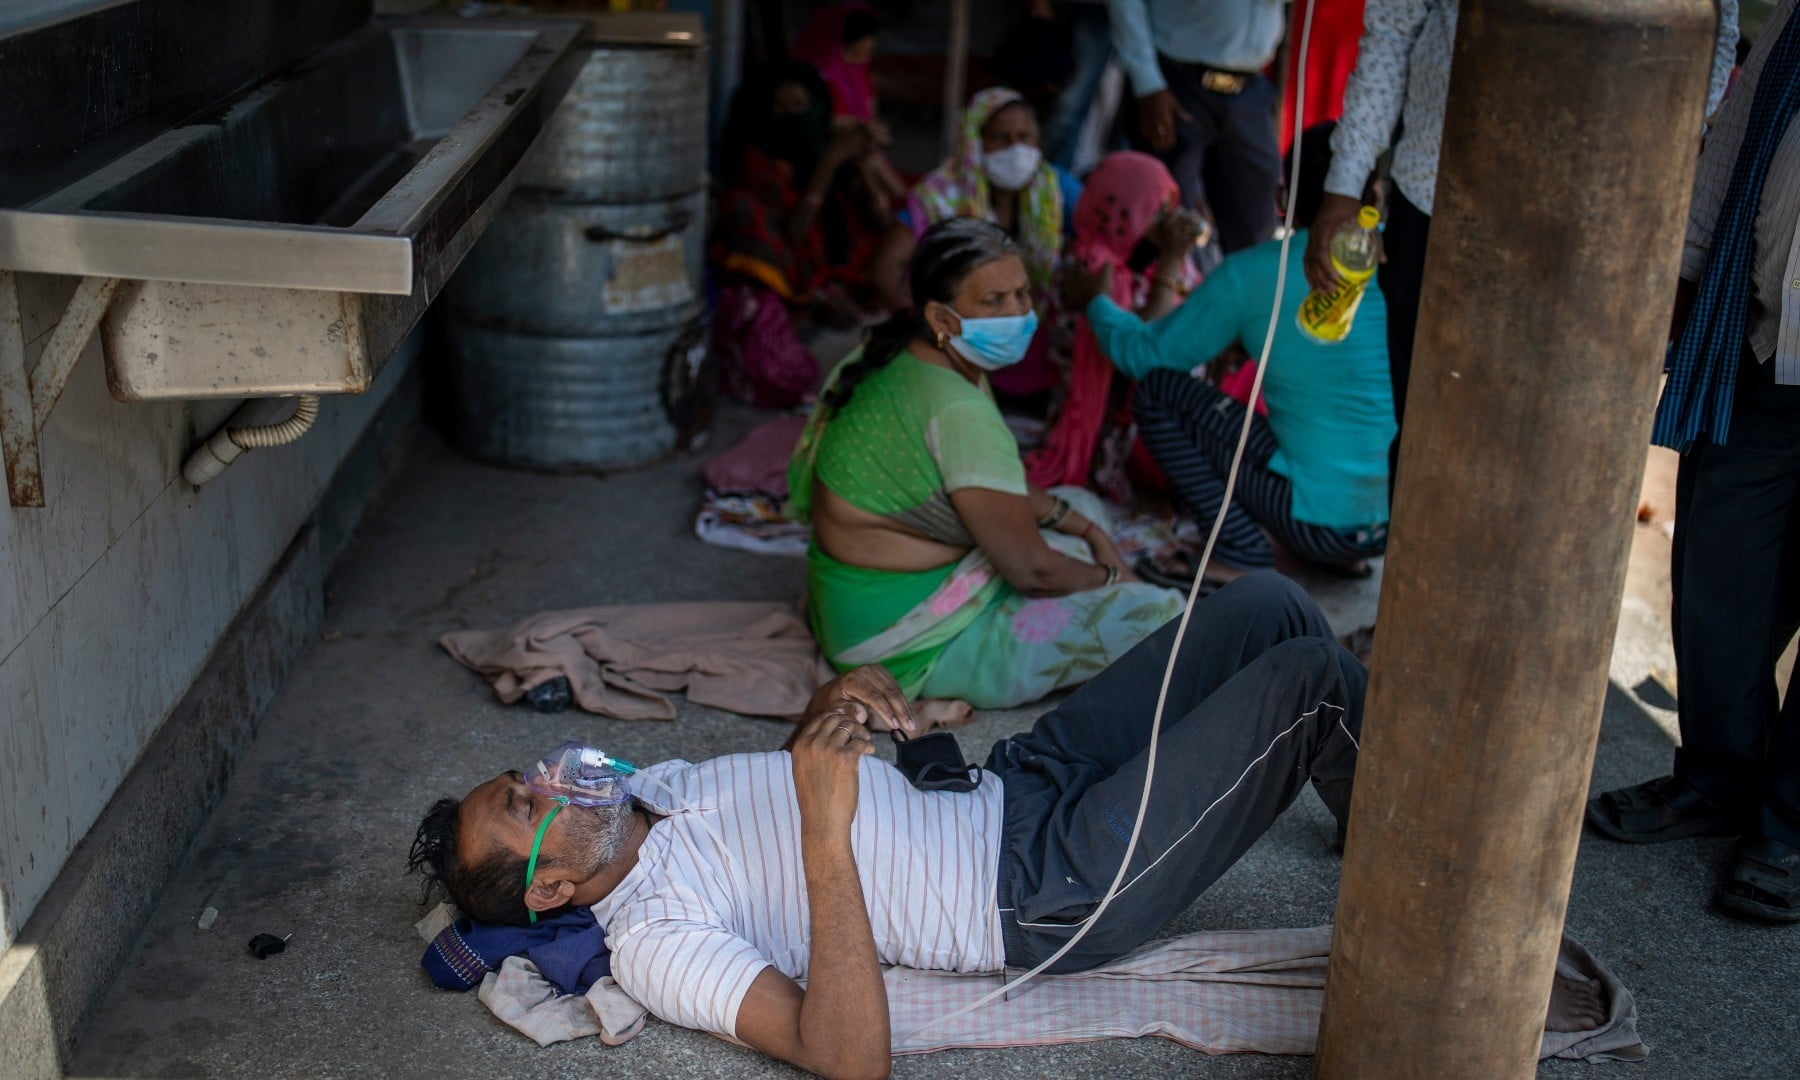 A patient receives oxygen outside a Gurdwara, a Sikh house of worship, in New Delhi on April 24. — AP